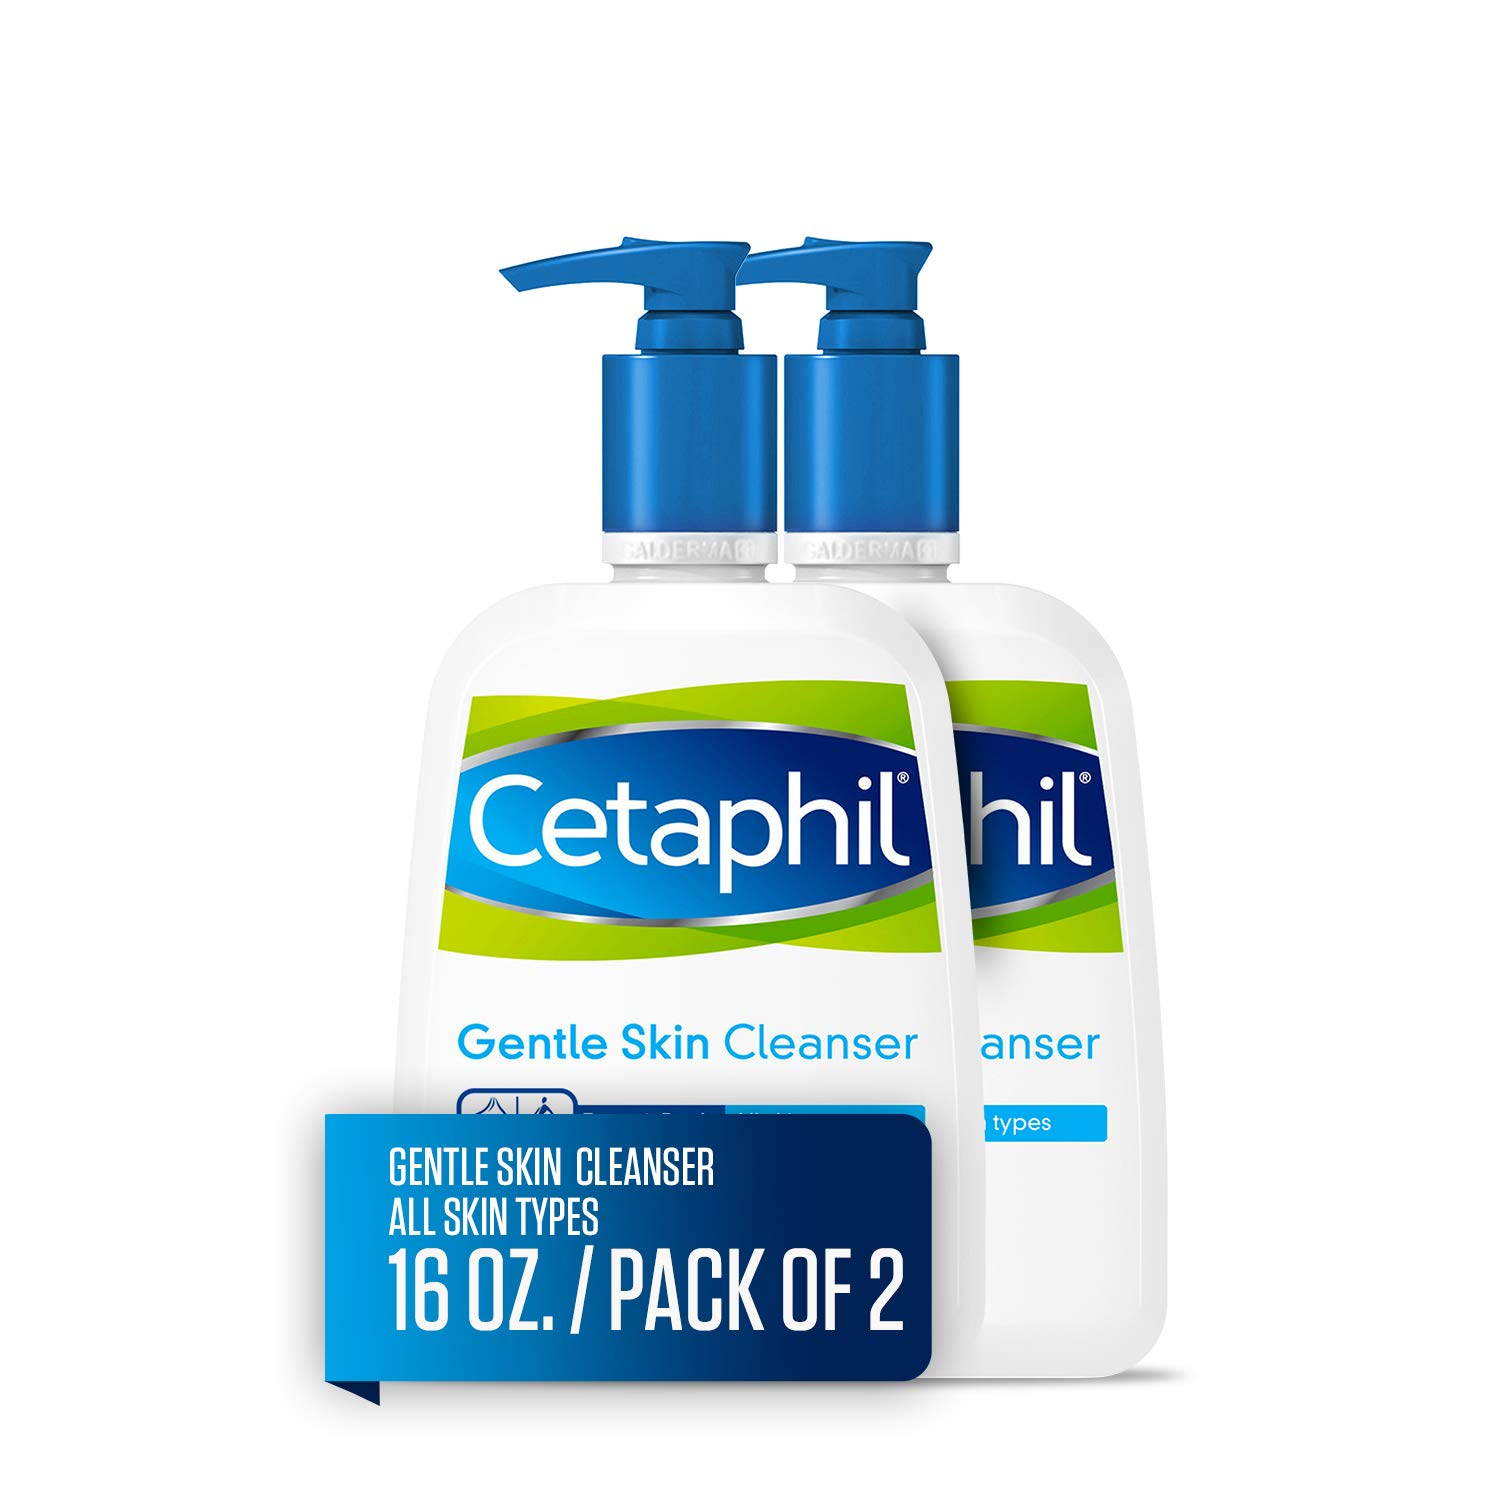 Cetaphil Gentle Skin Cleanser for All Skin Types, Face Wash for Sensitive Skin